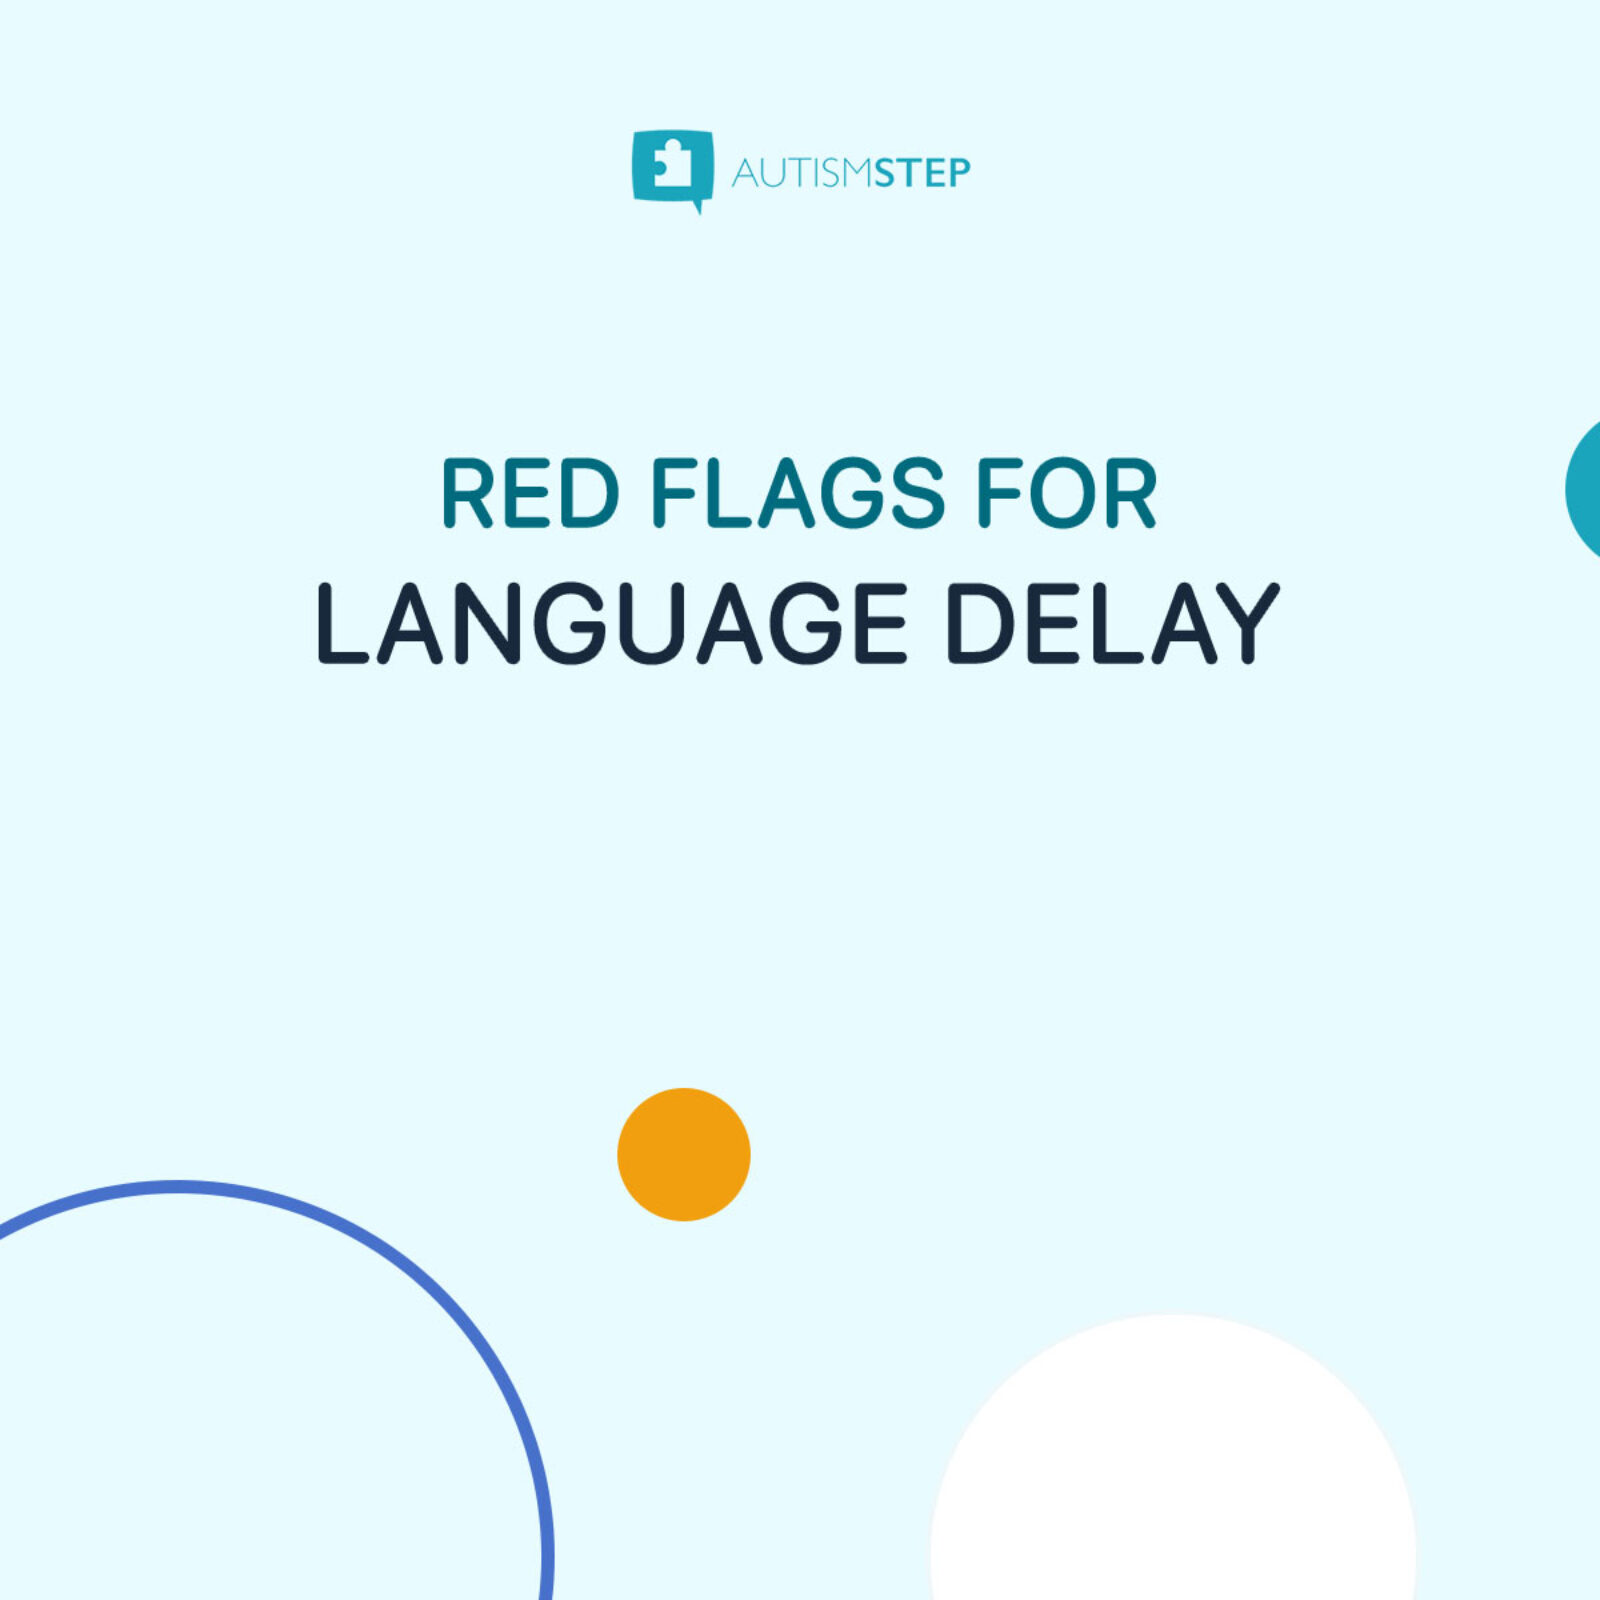 AutismSTEP-Red-Flags-For-Language-Delay